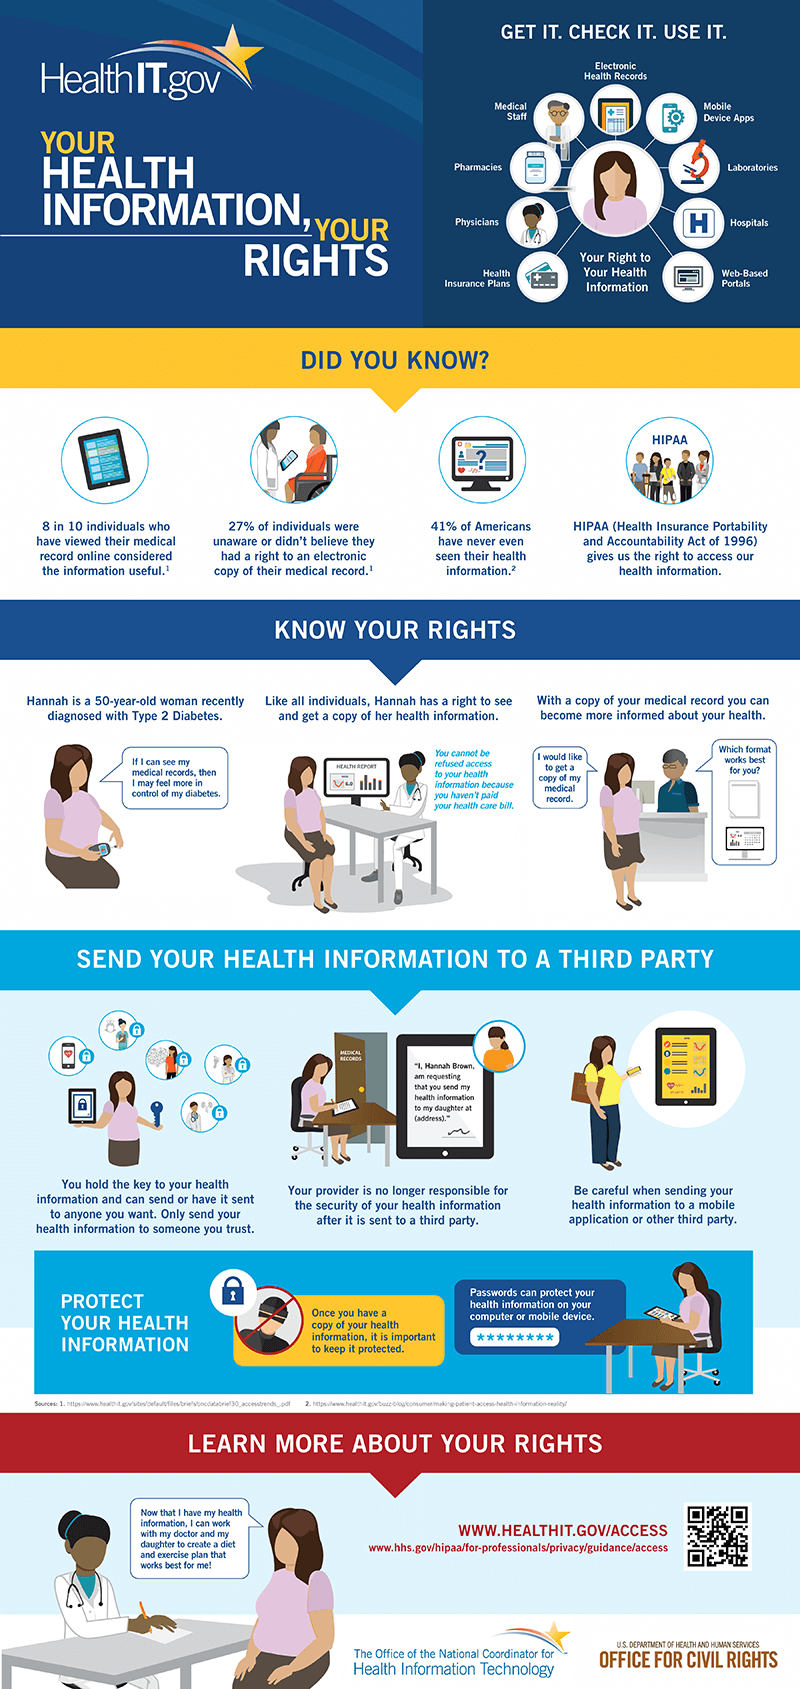 Your Health Information, Your Rights